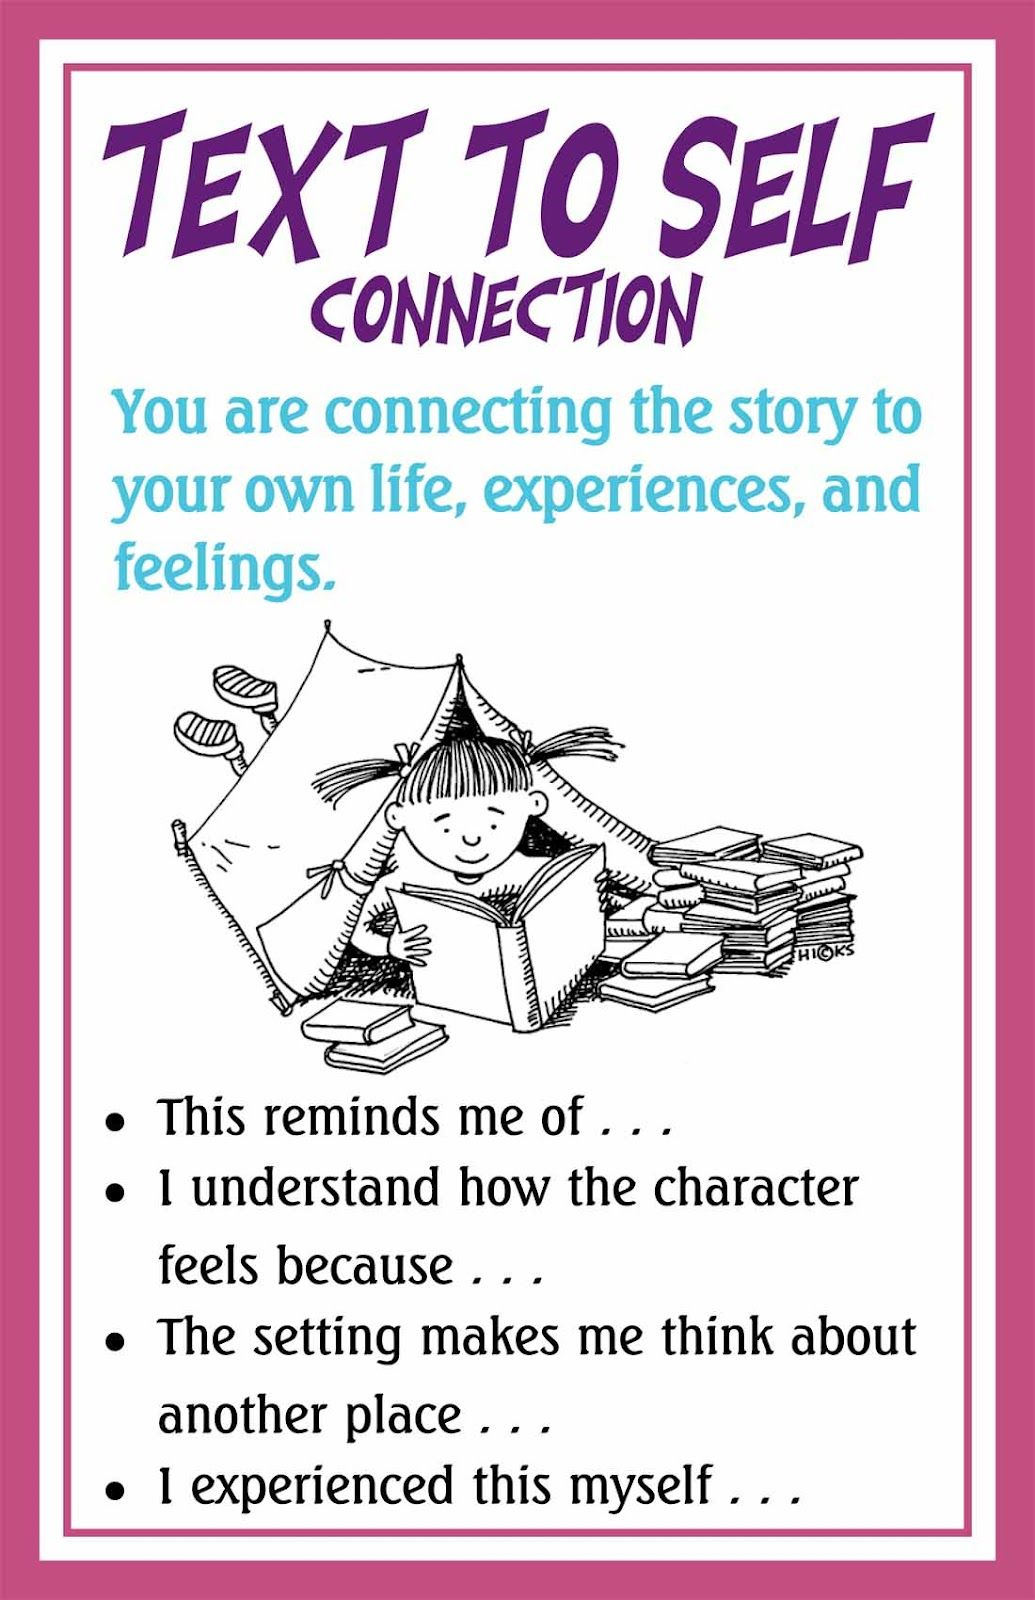 Making Connections Text to self connection, Text to self